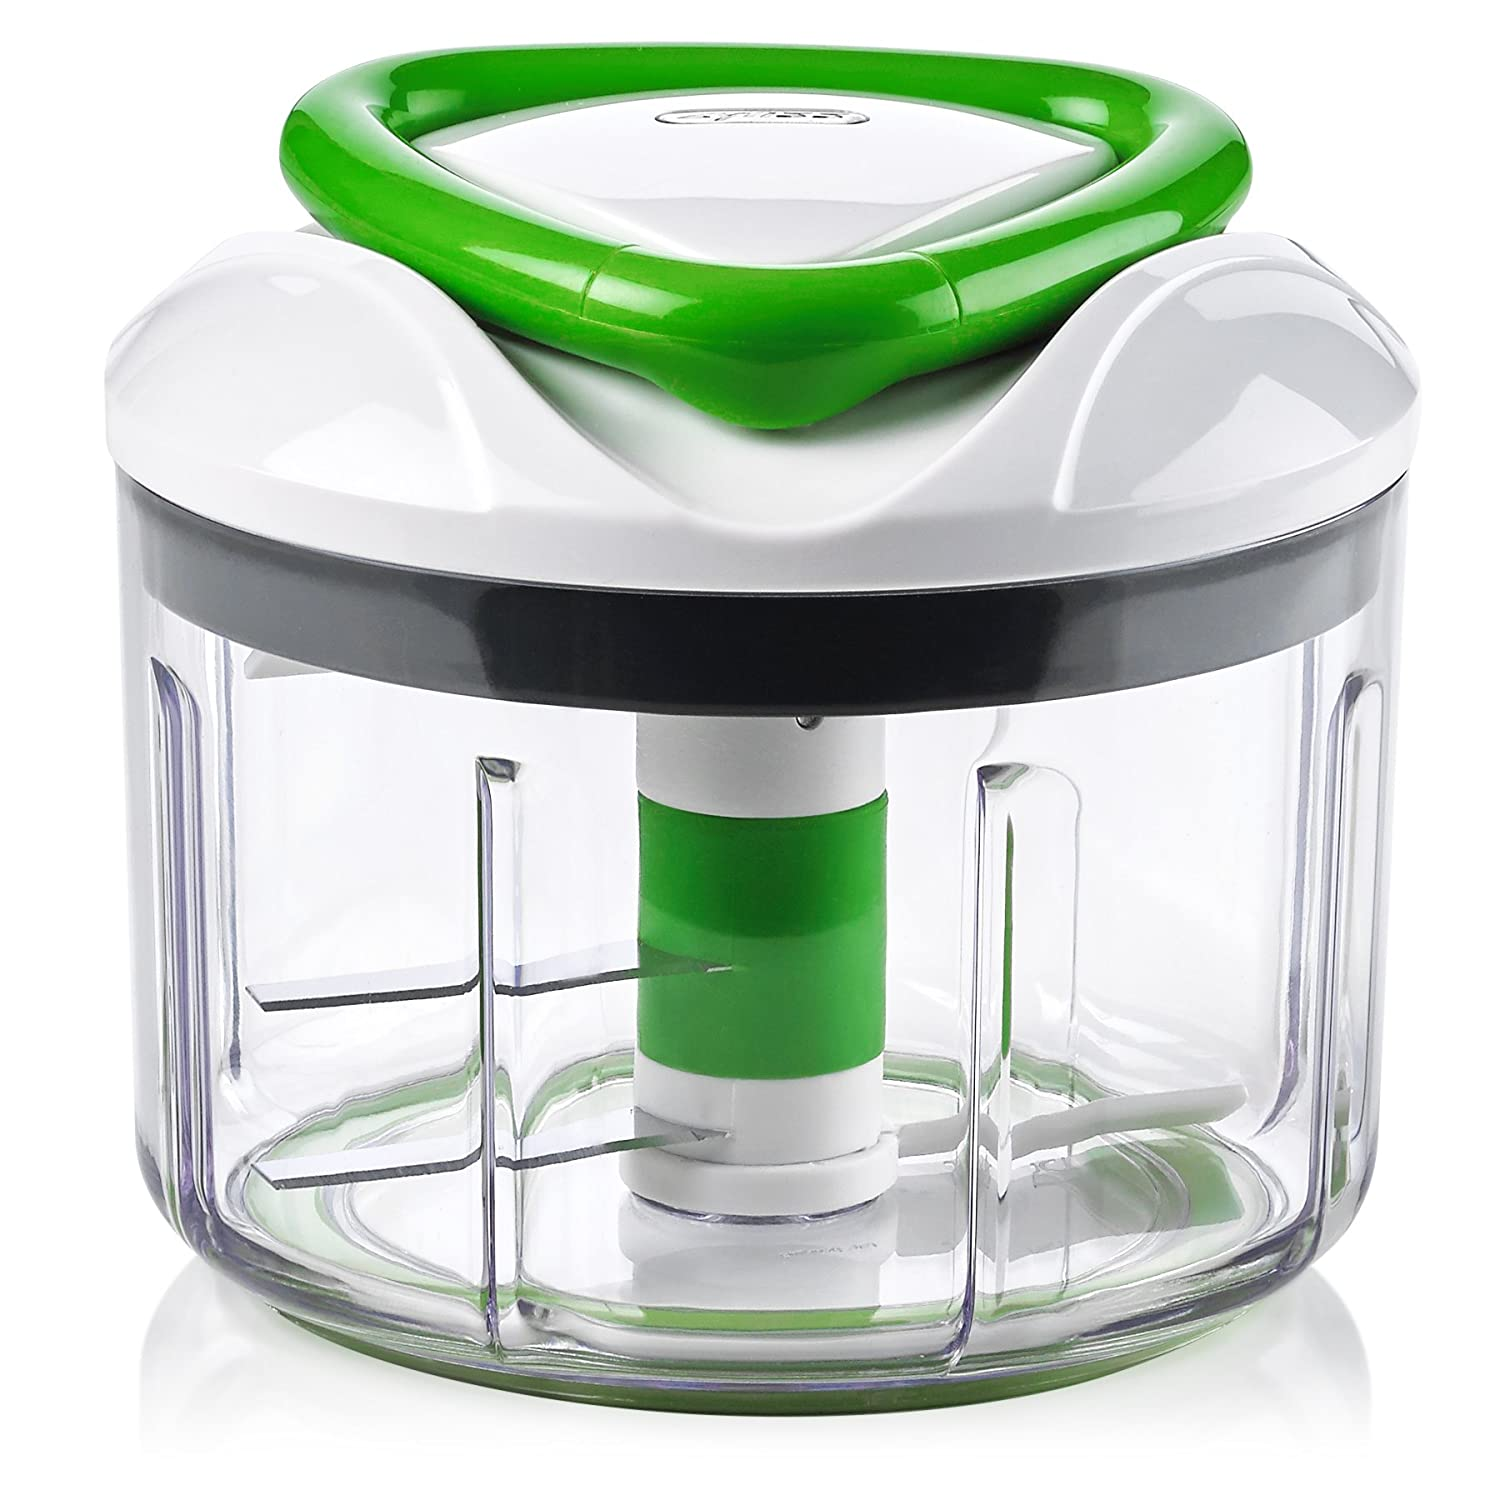 ZYLISS Easy Pull Food Chopper and Manual Food Processor - Vegetable Slicer and Dicer - Hand Held (Green) ZS-E910038U